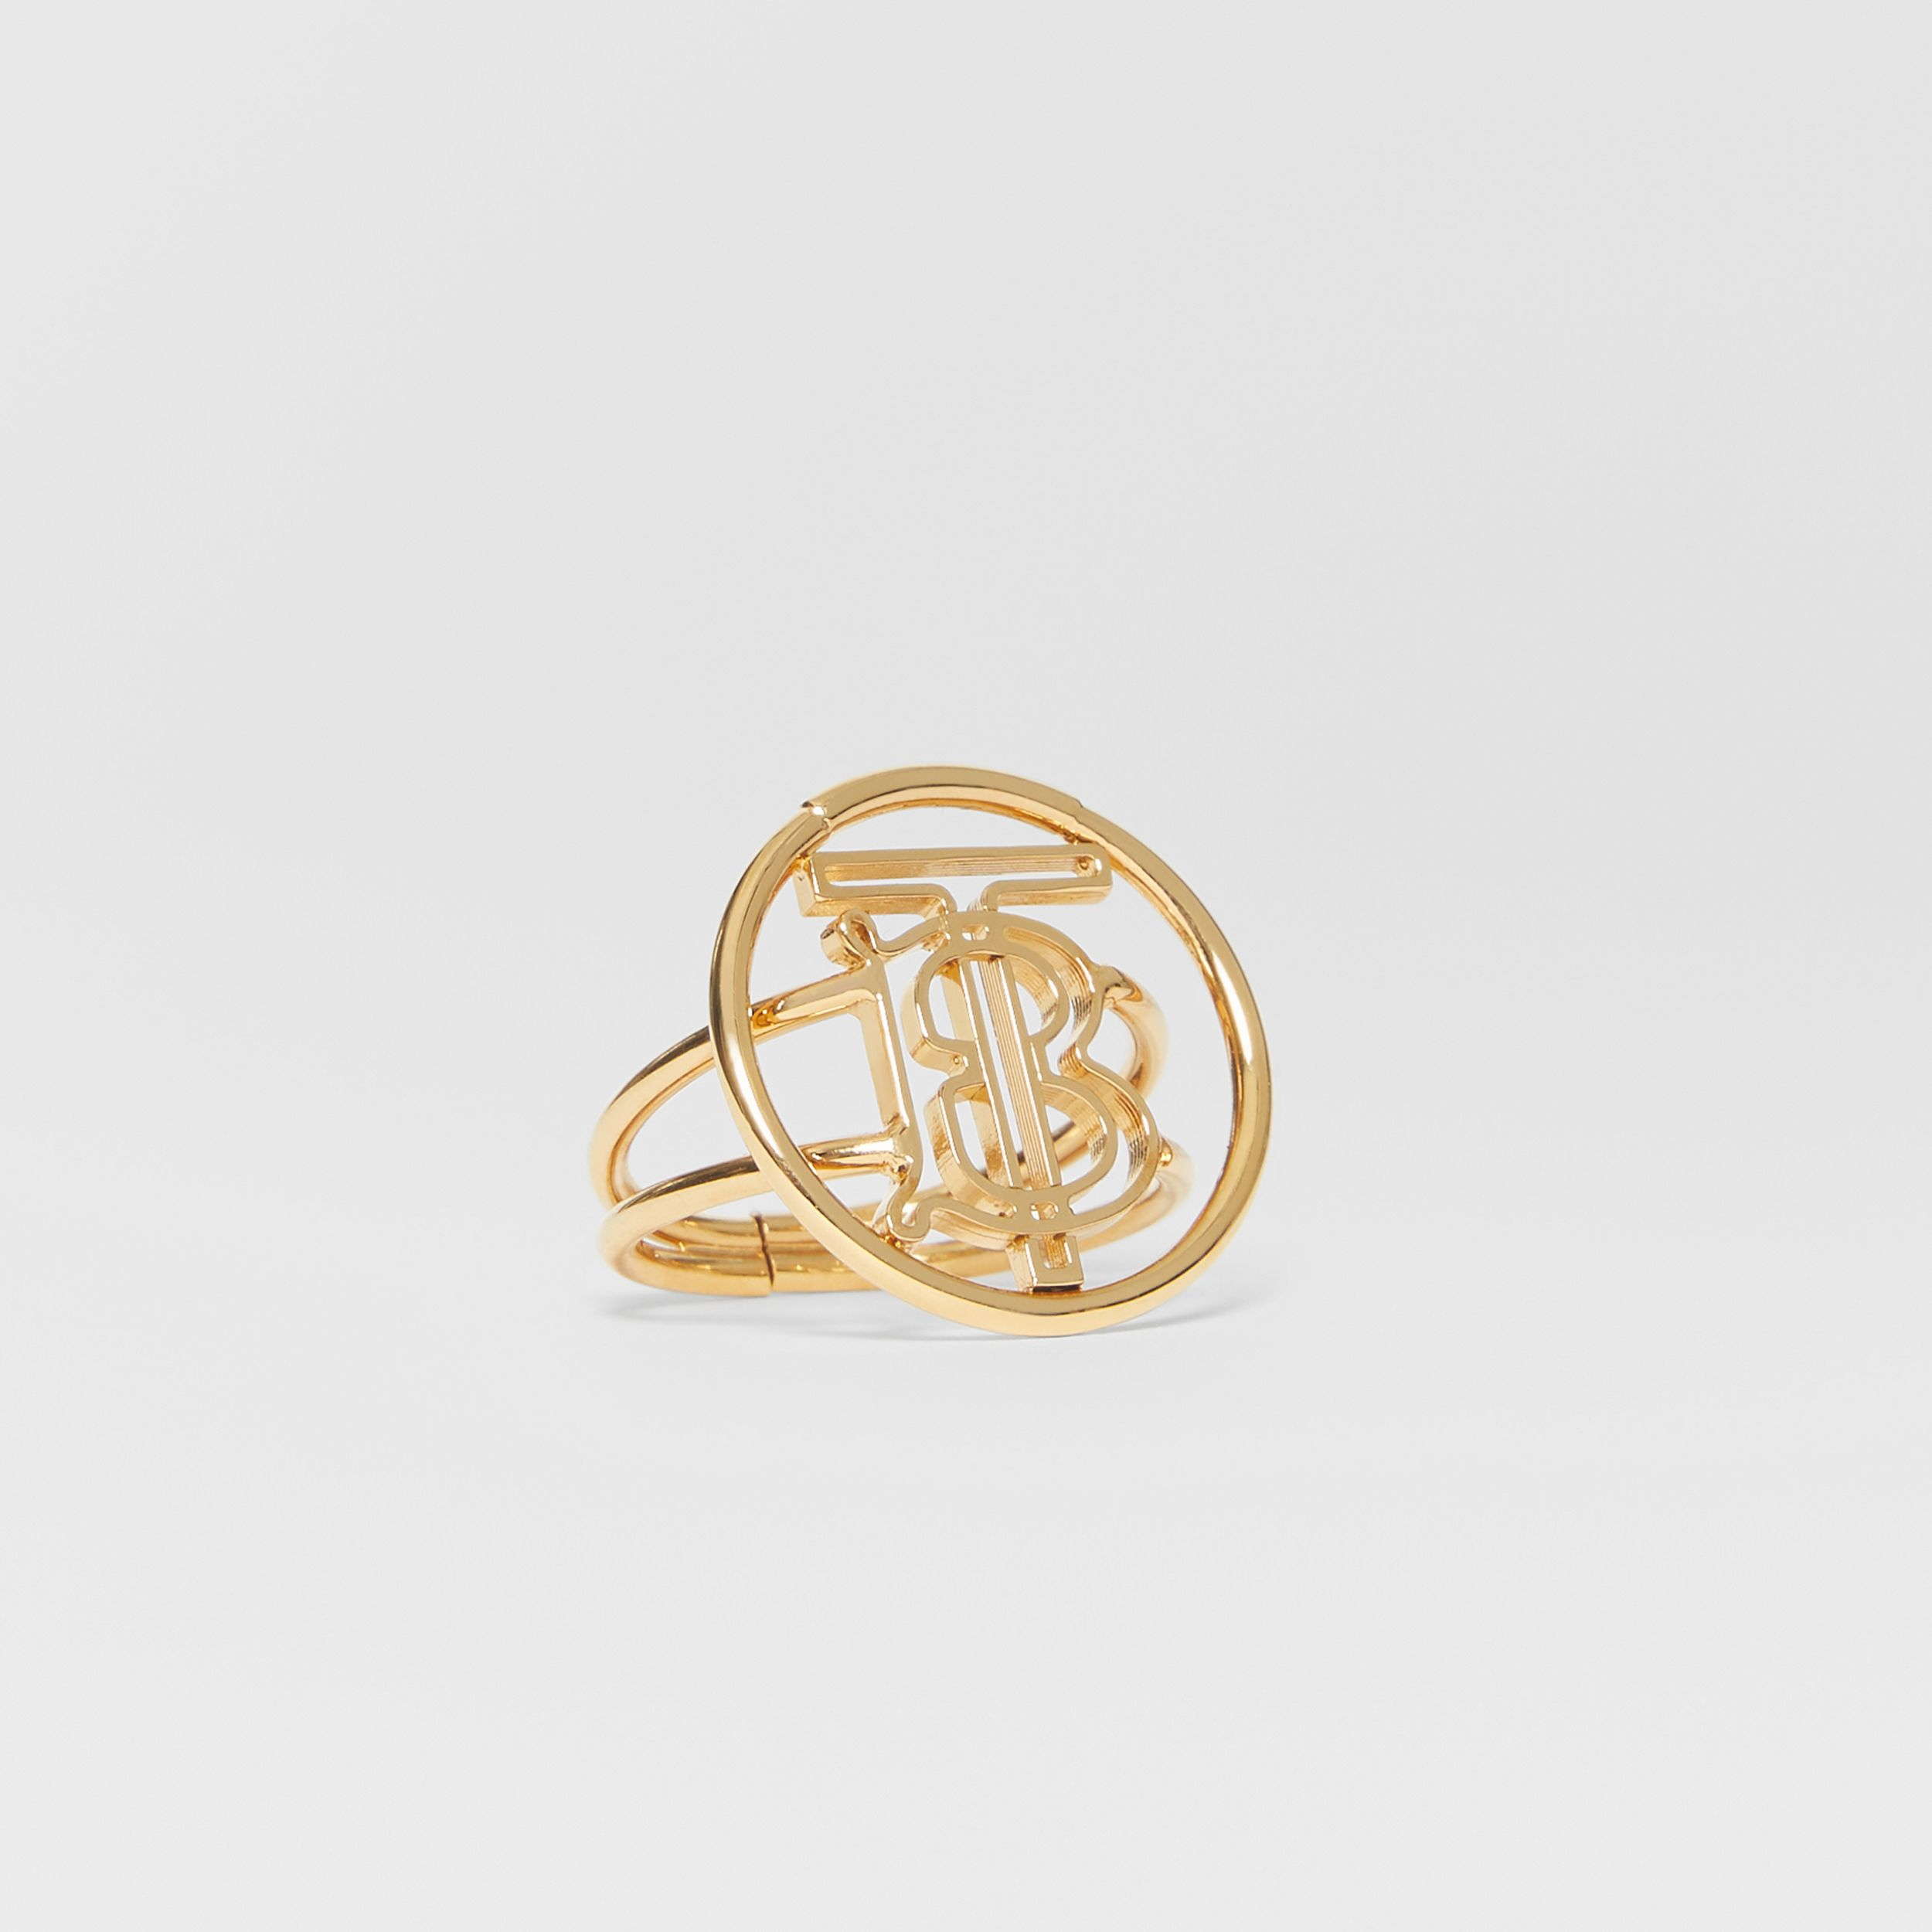 Large Gold-plated Monogram Motif Ring in Light - Women | Burberry United States - 3